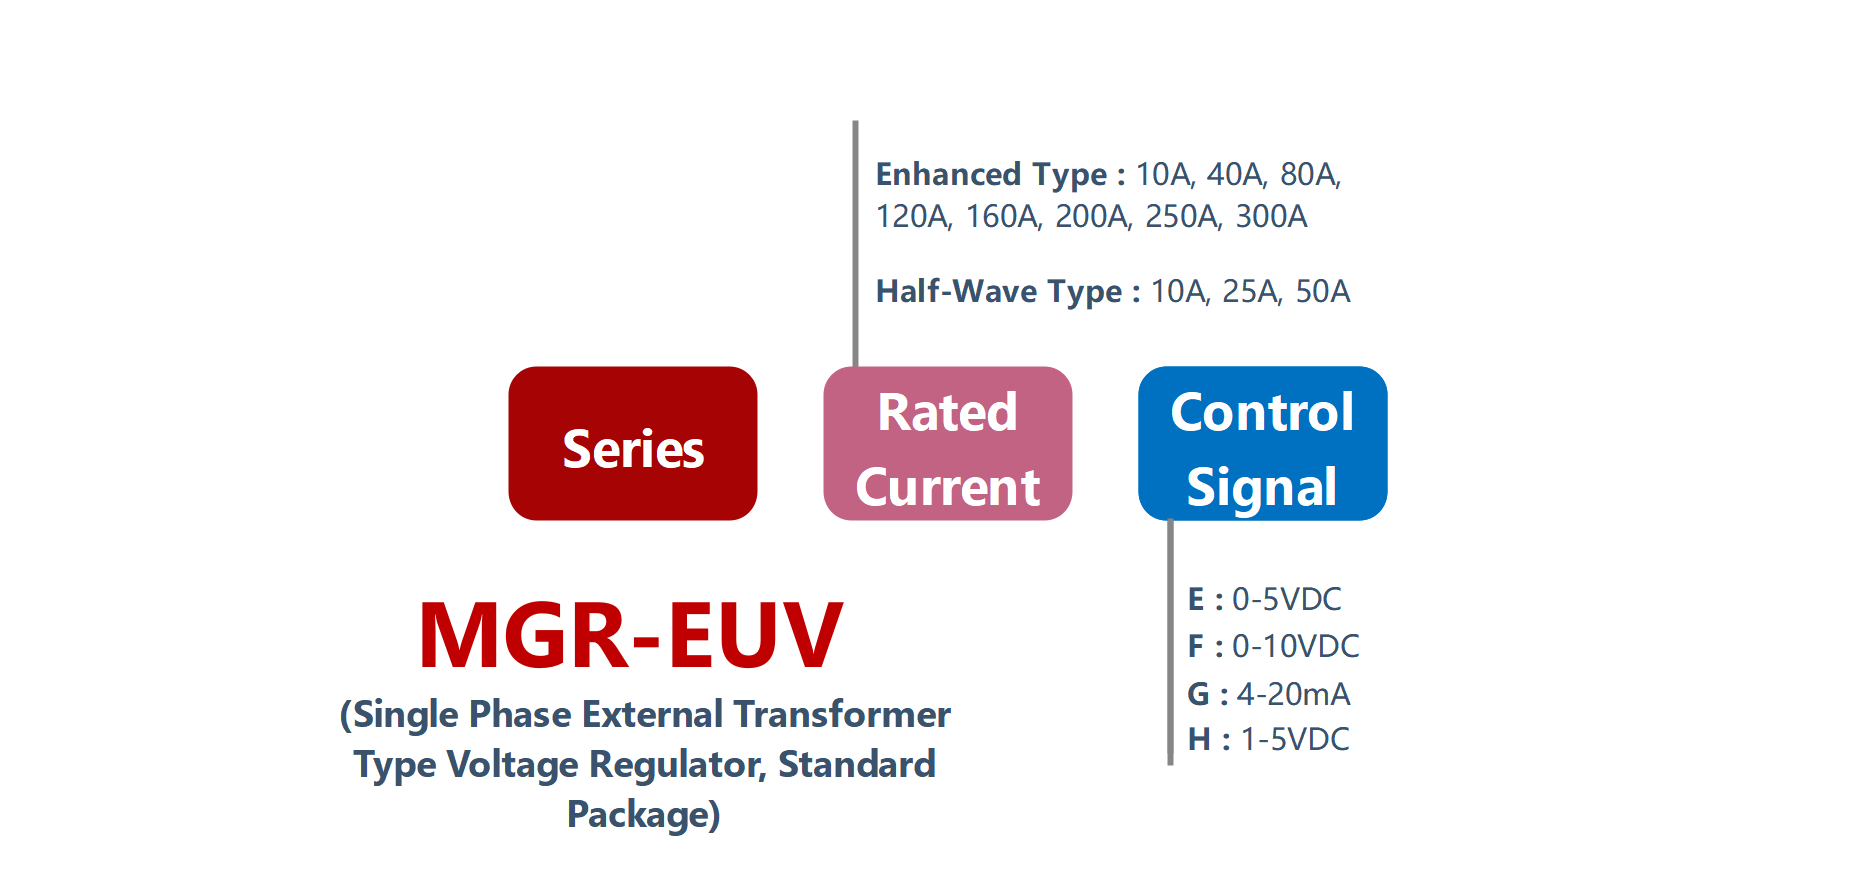 How to order MGR-EUV Series Voltage Power Regulator